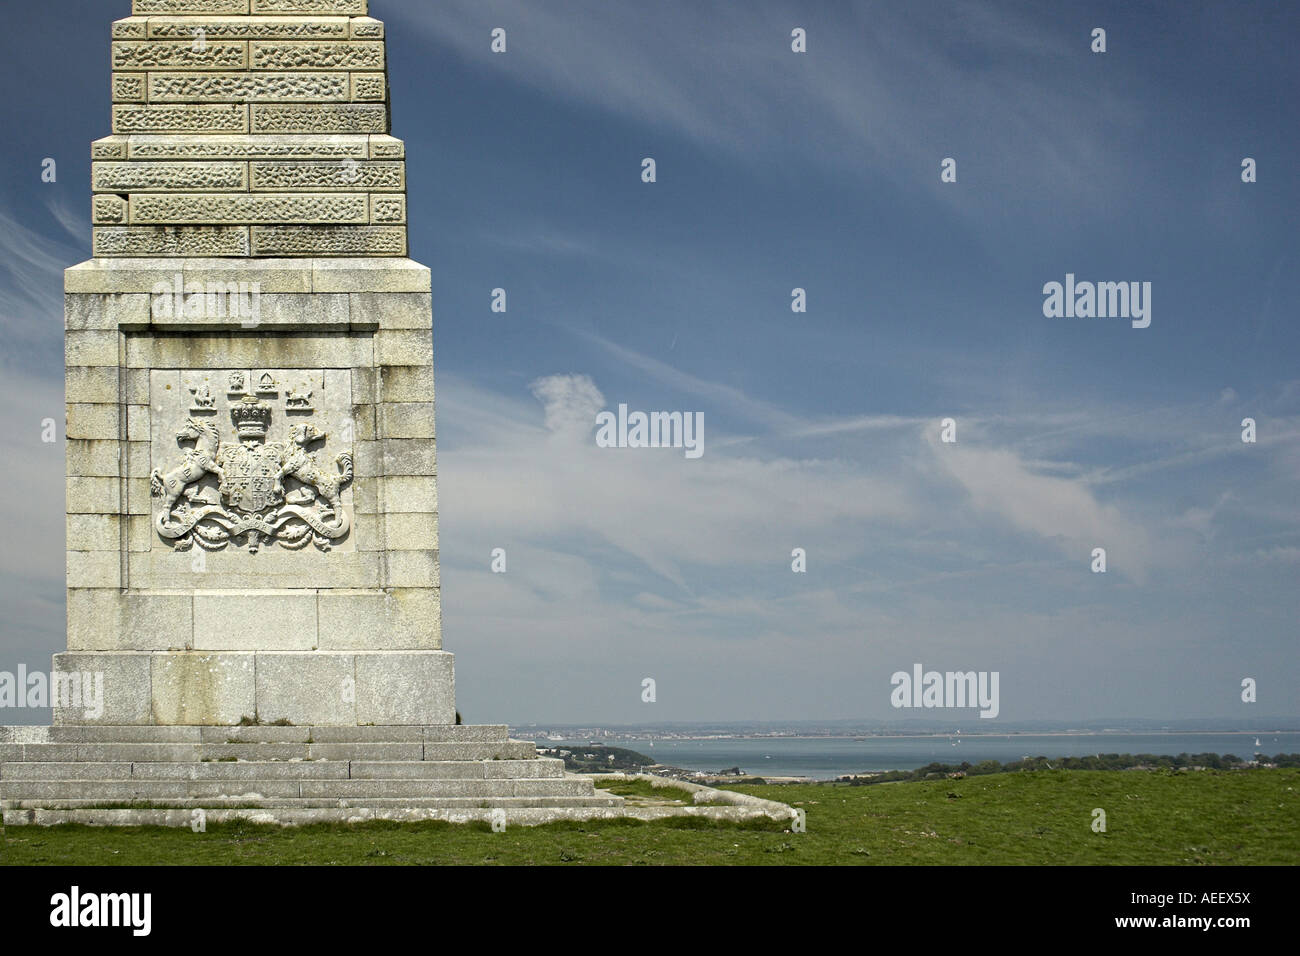 The coat of arms on the Lord Yarborough Monument, Bembridge Down / Culver Cliff, Isle of Wight, England, UK. - Stock Image